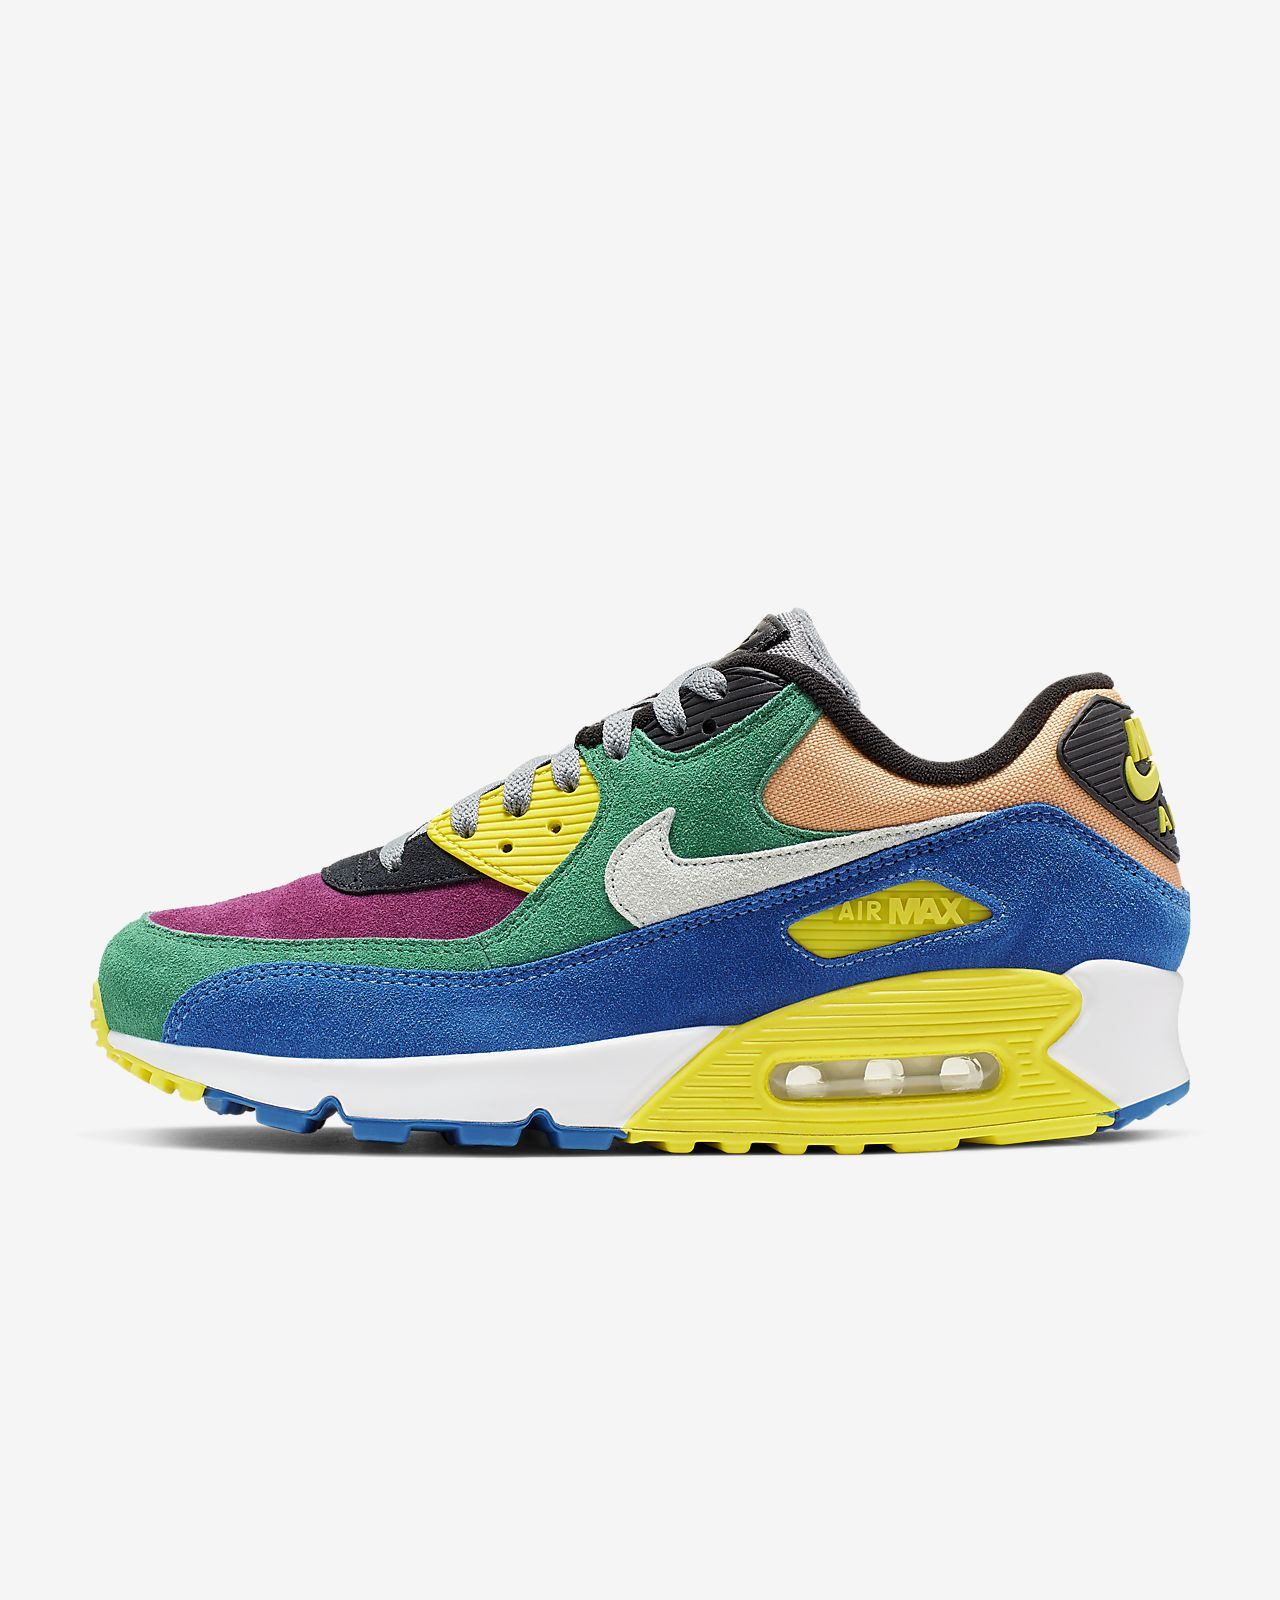 ca833a065 Nike Air Max 90 Men's Shoe. Nike.com